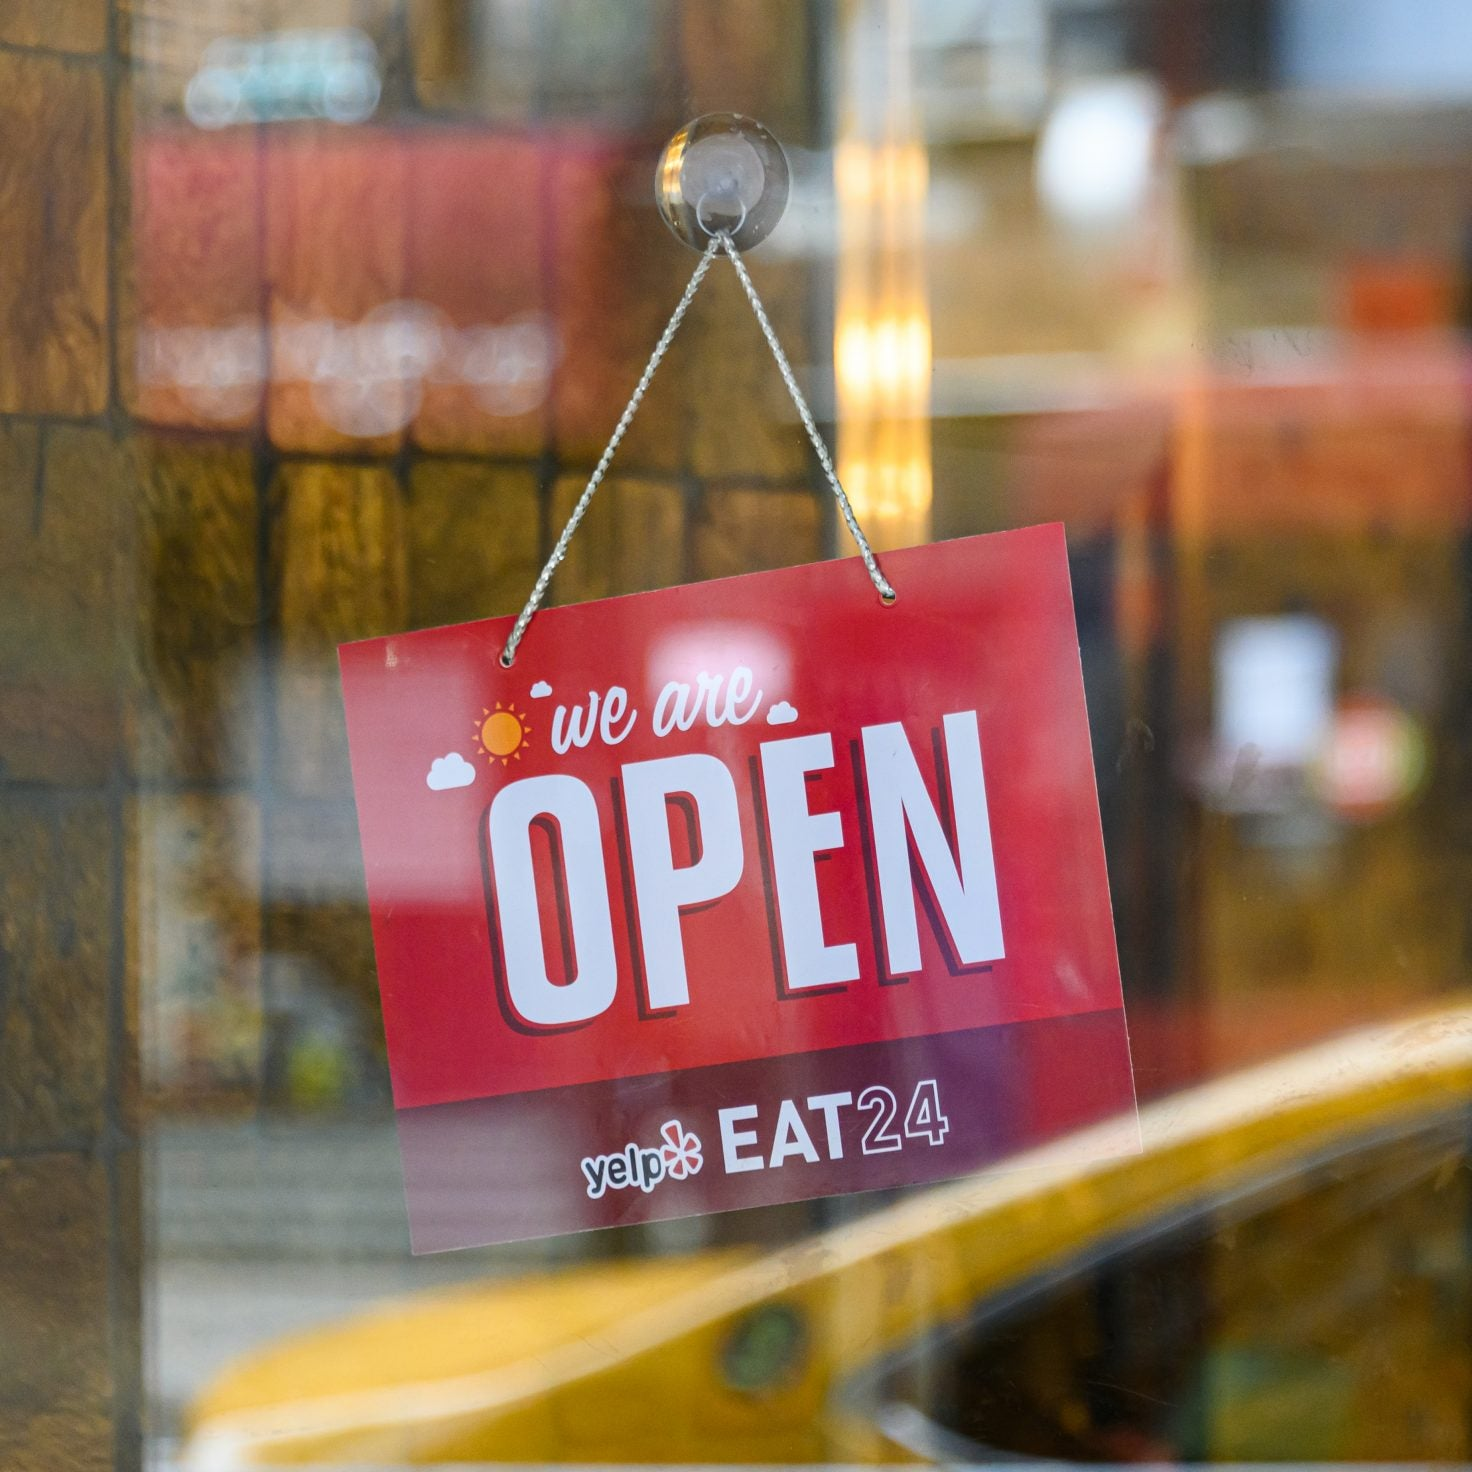 As States Begin To Lift Restrictions, Few Americans Want Businesses Reopened: Poll